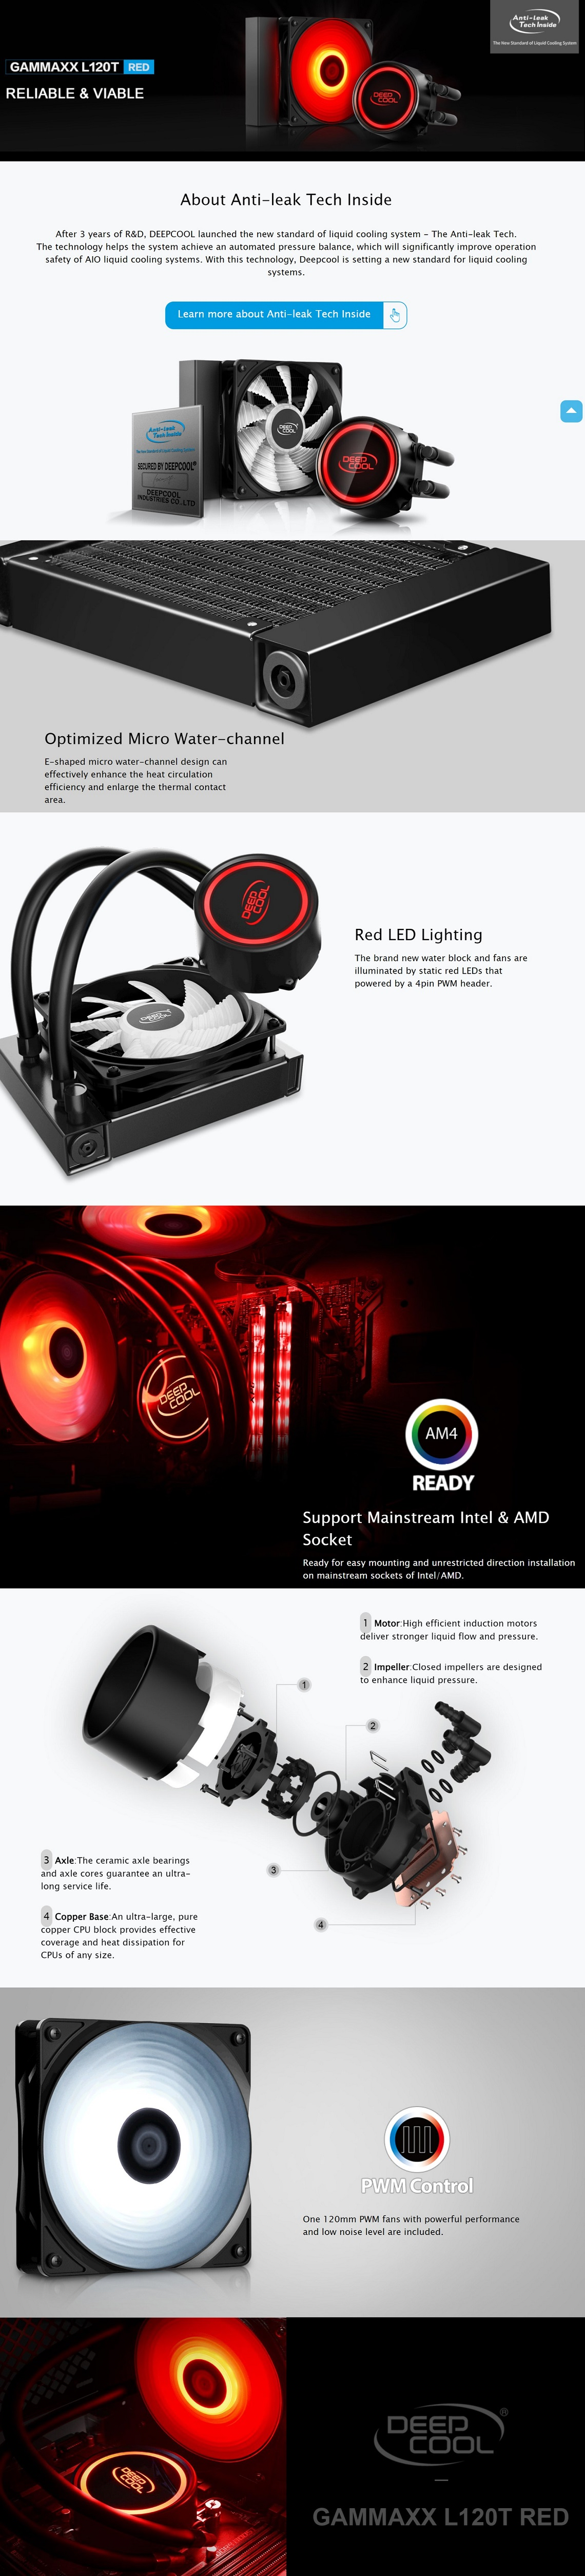 DeepCool Gammaxx L120T Red CPU Liquid/Water Cooler 120mm PWM Fan with Red LEDs